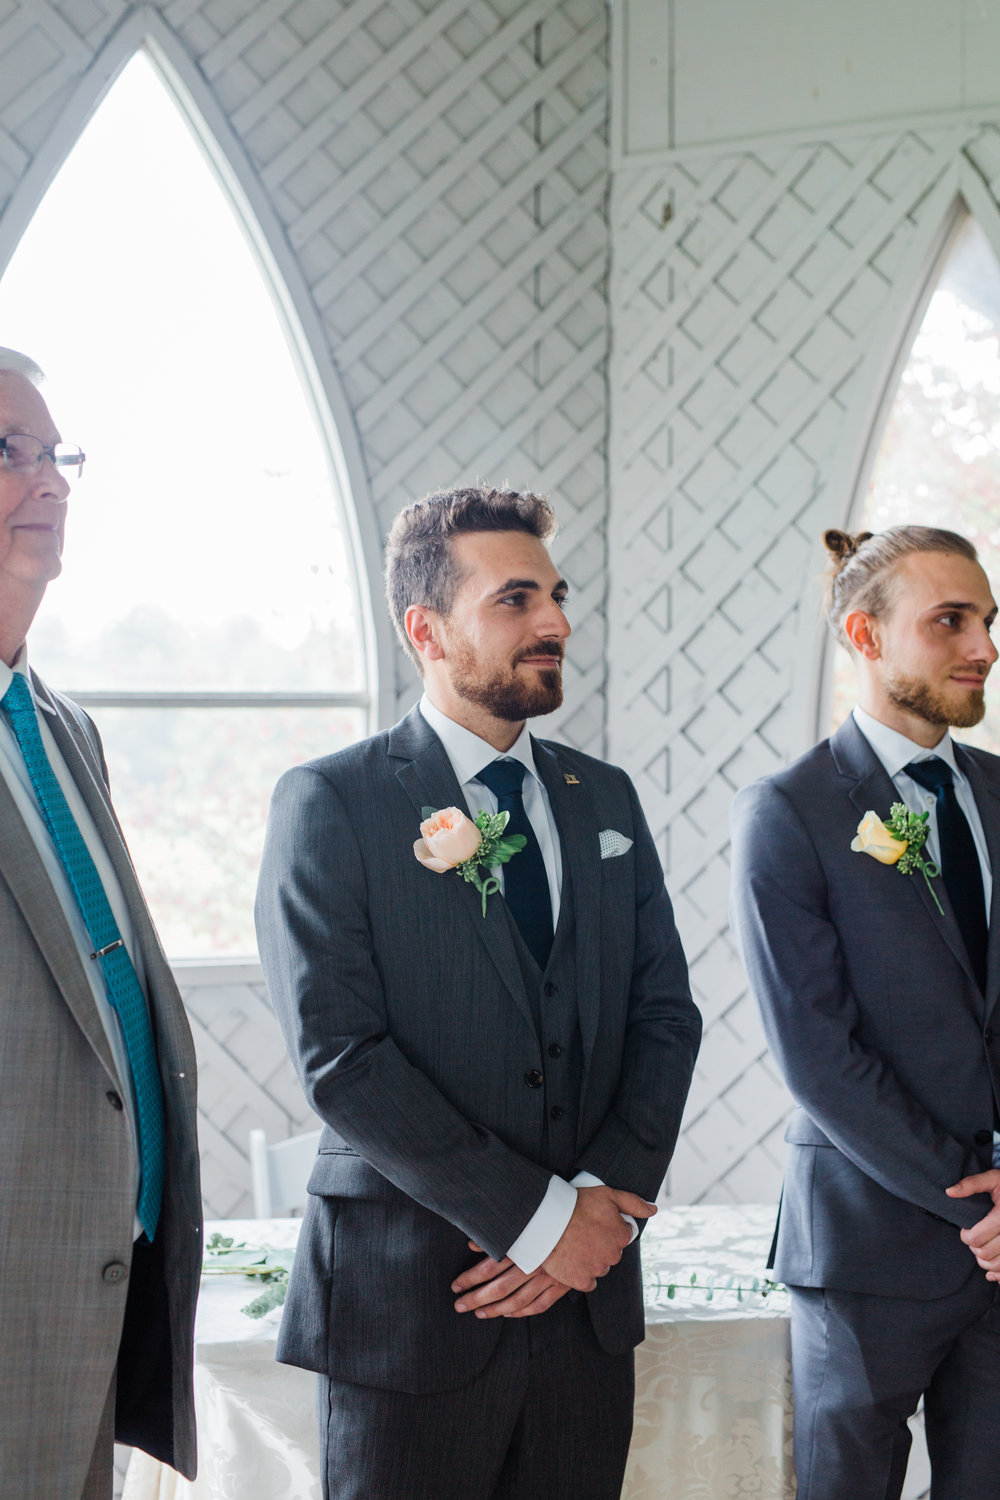 Amir-Golbazi-Danielle-Giroux-Photography_Toronto-Wedding_Cedarwood_Rachel-Paul_165.jpg